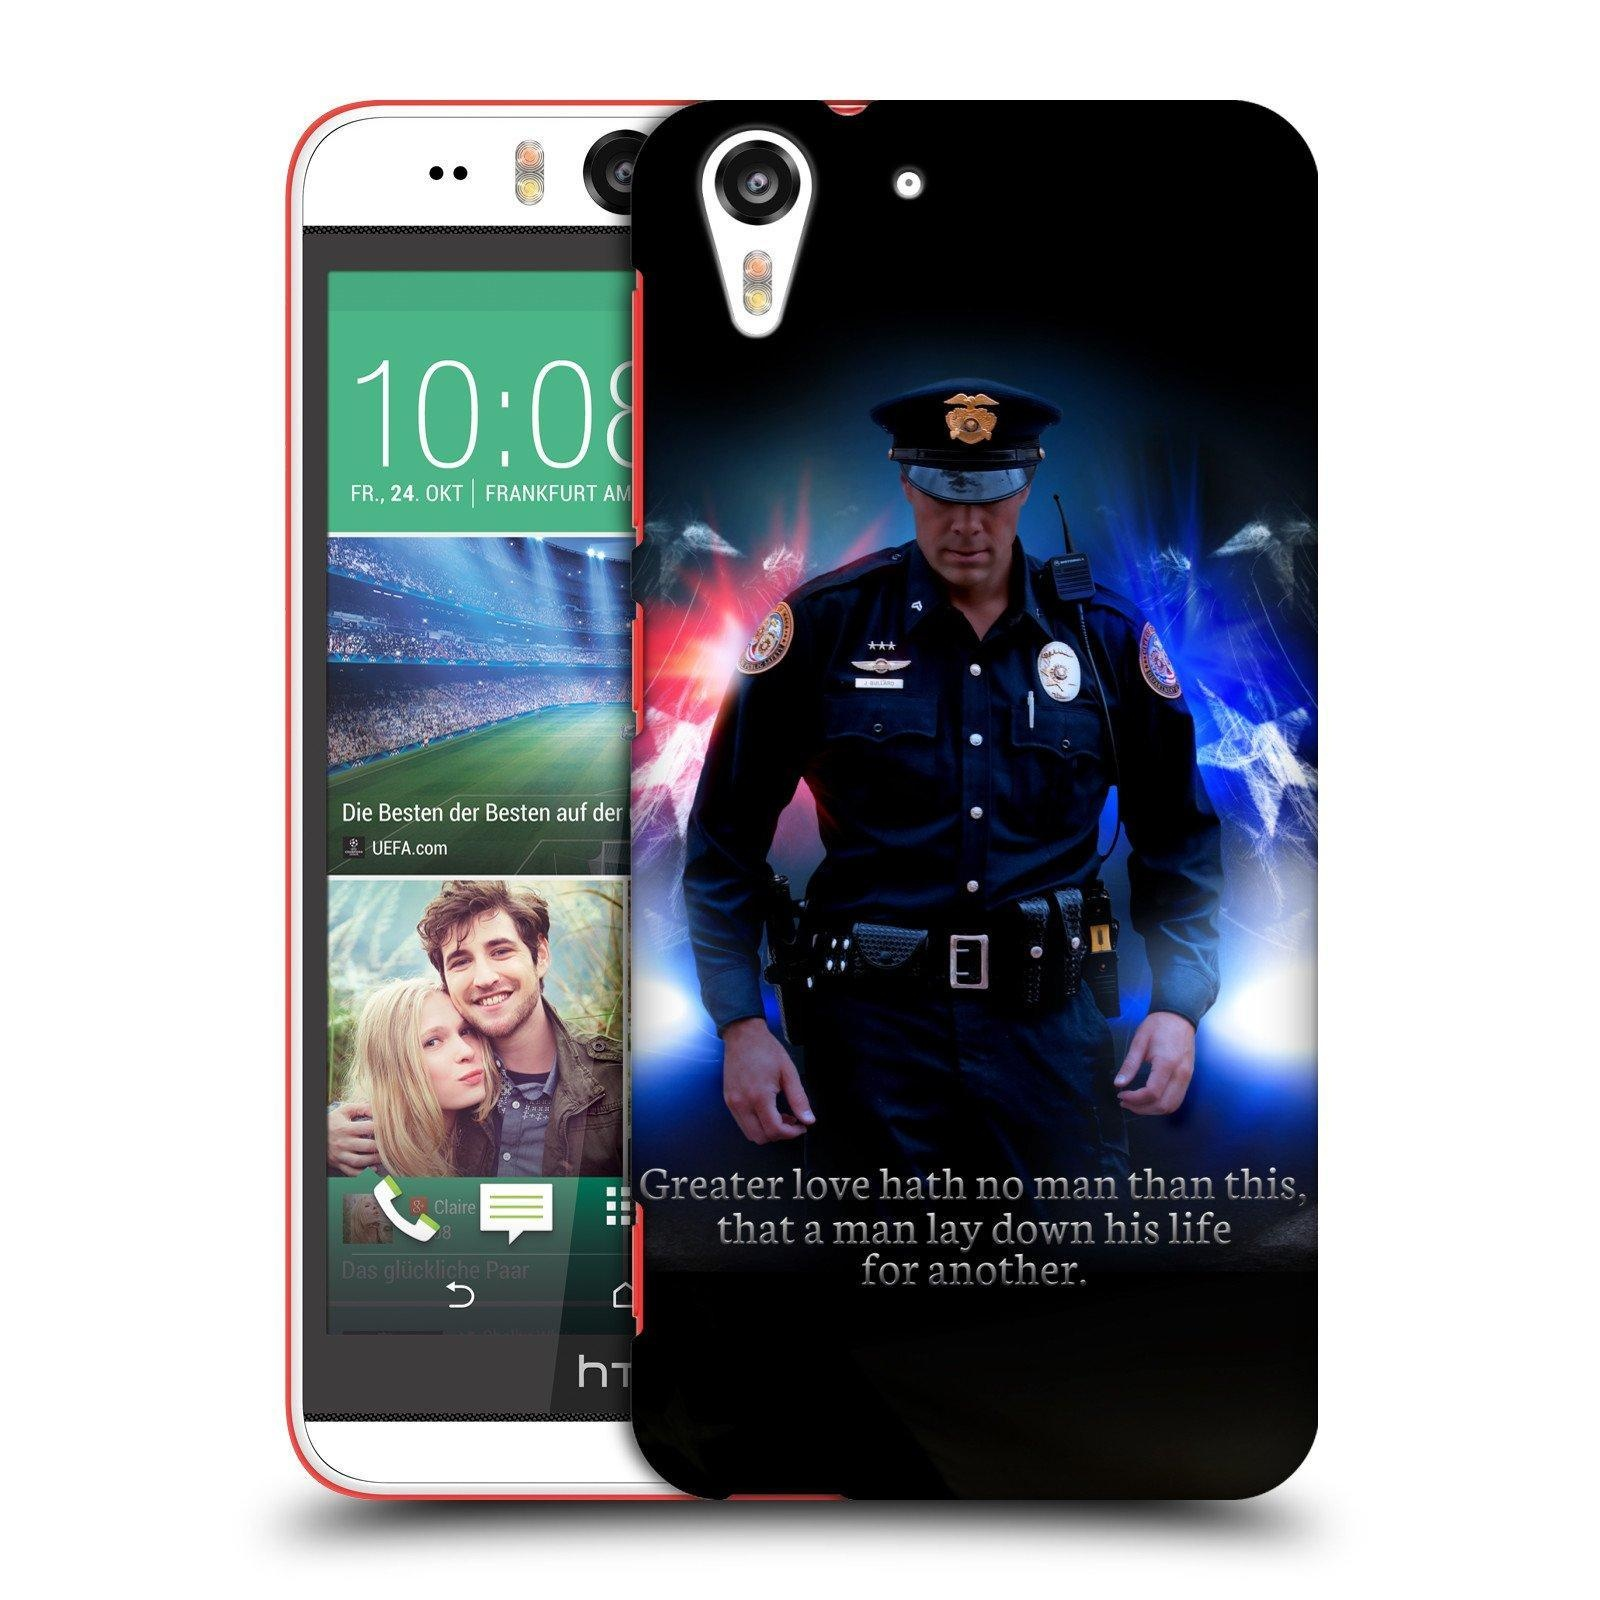 Official Jason Bullard No Greater Love Police Law Enforcement Hard Back Case for HTC Desire Eye